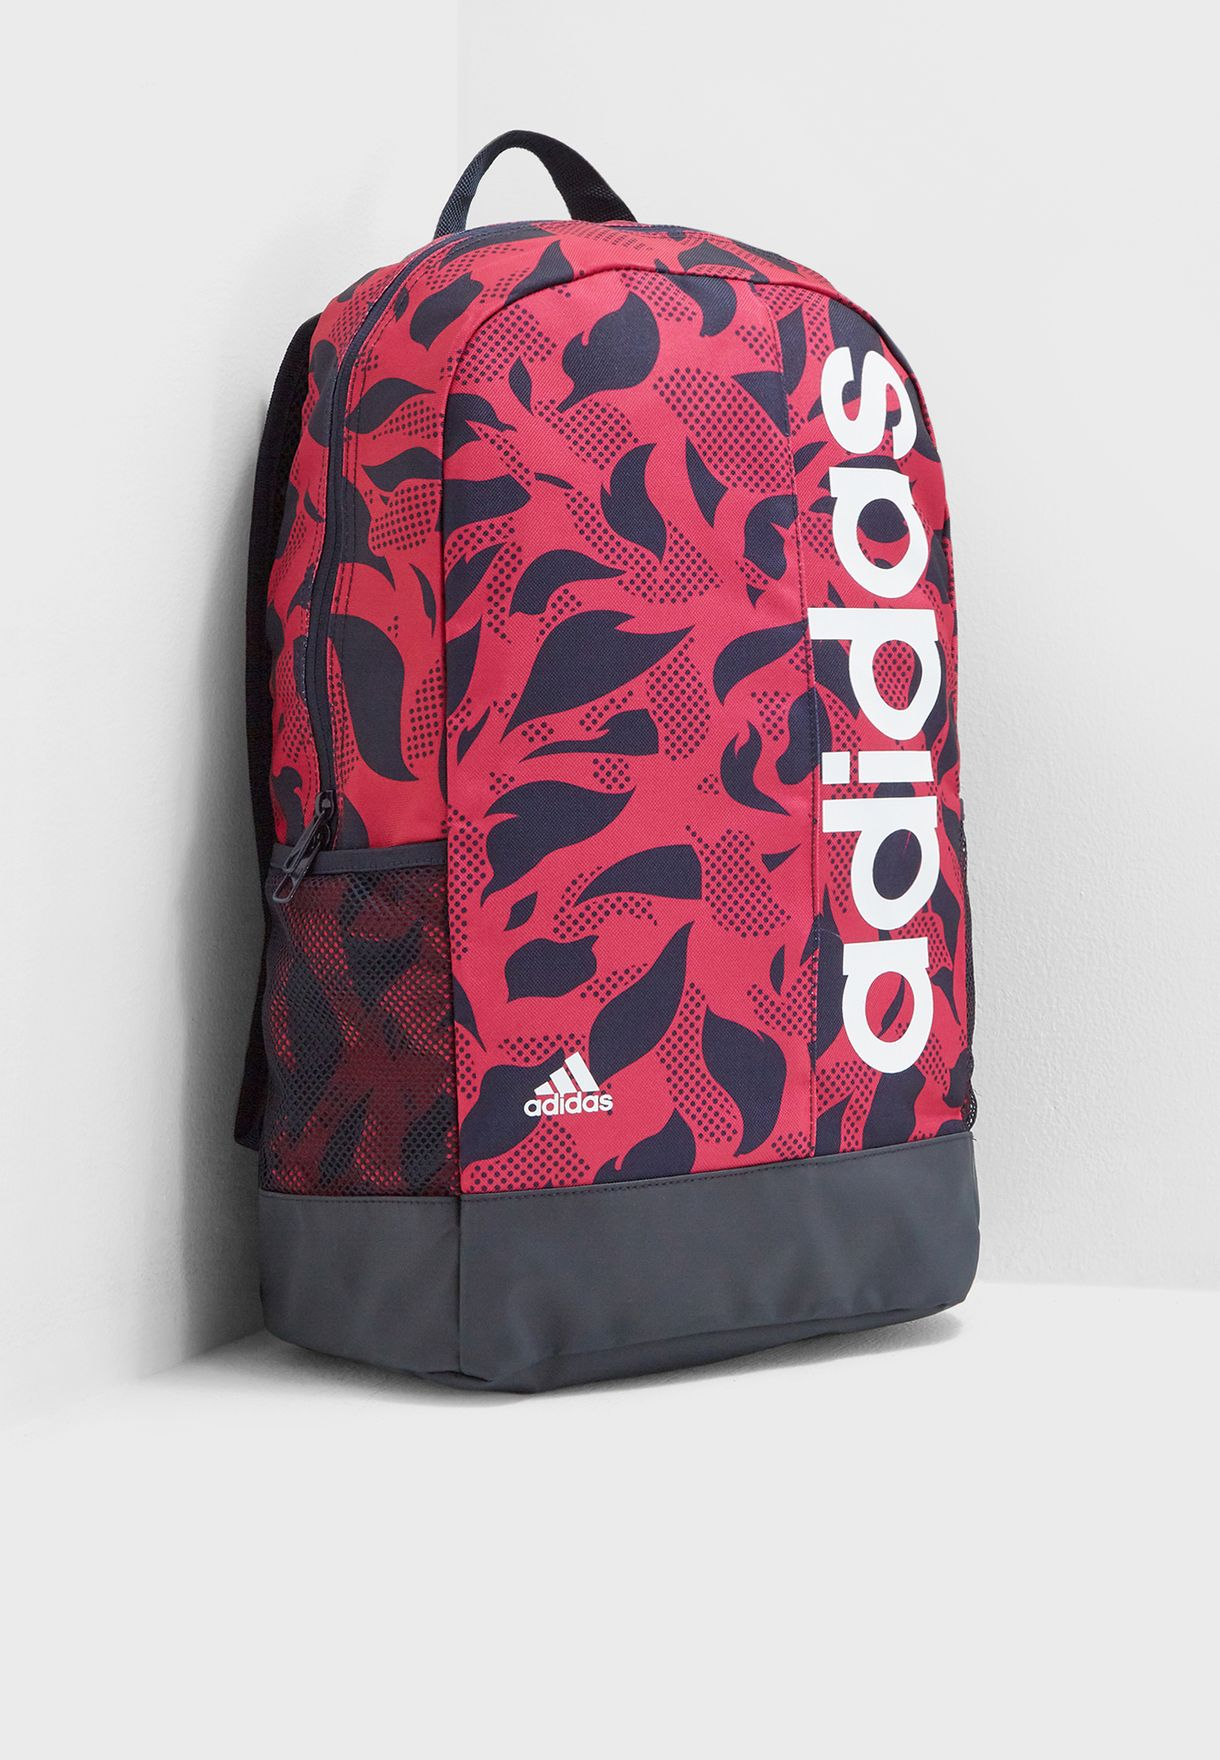 fb61528999 Sports Direct Adidas Drawstring Bag- Fenix Toulouse Handball